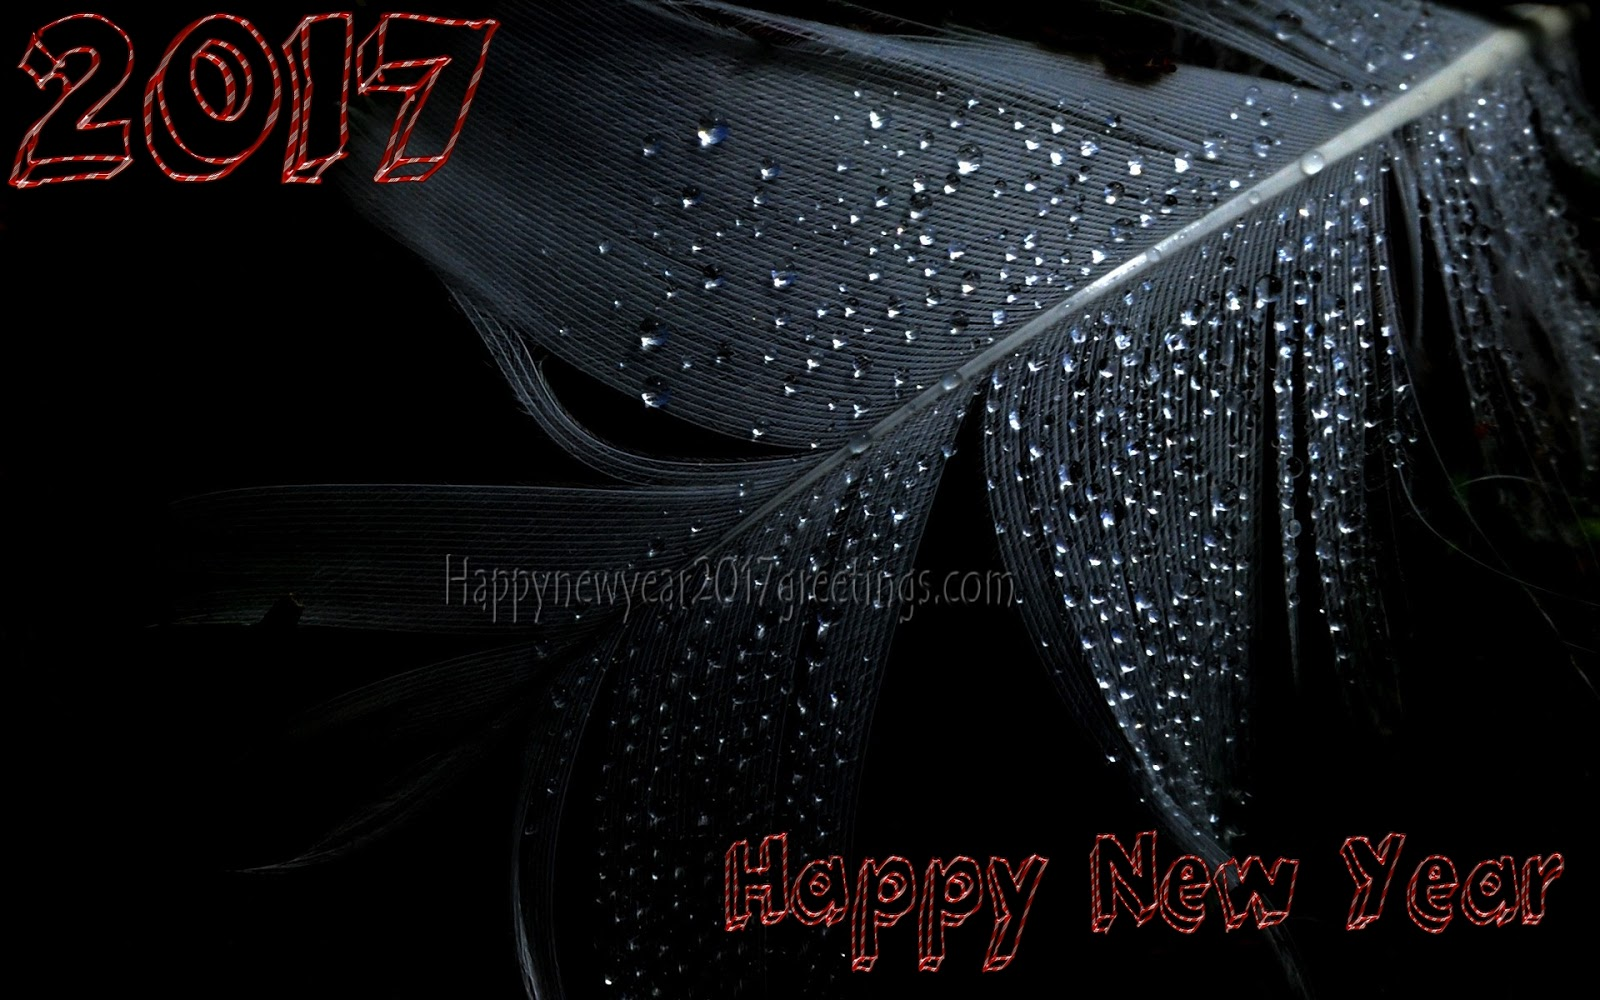 Happy New Year 2017 Cliparts 3D Animated GIF Images & HD ...